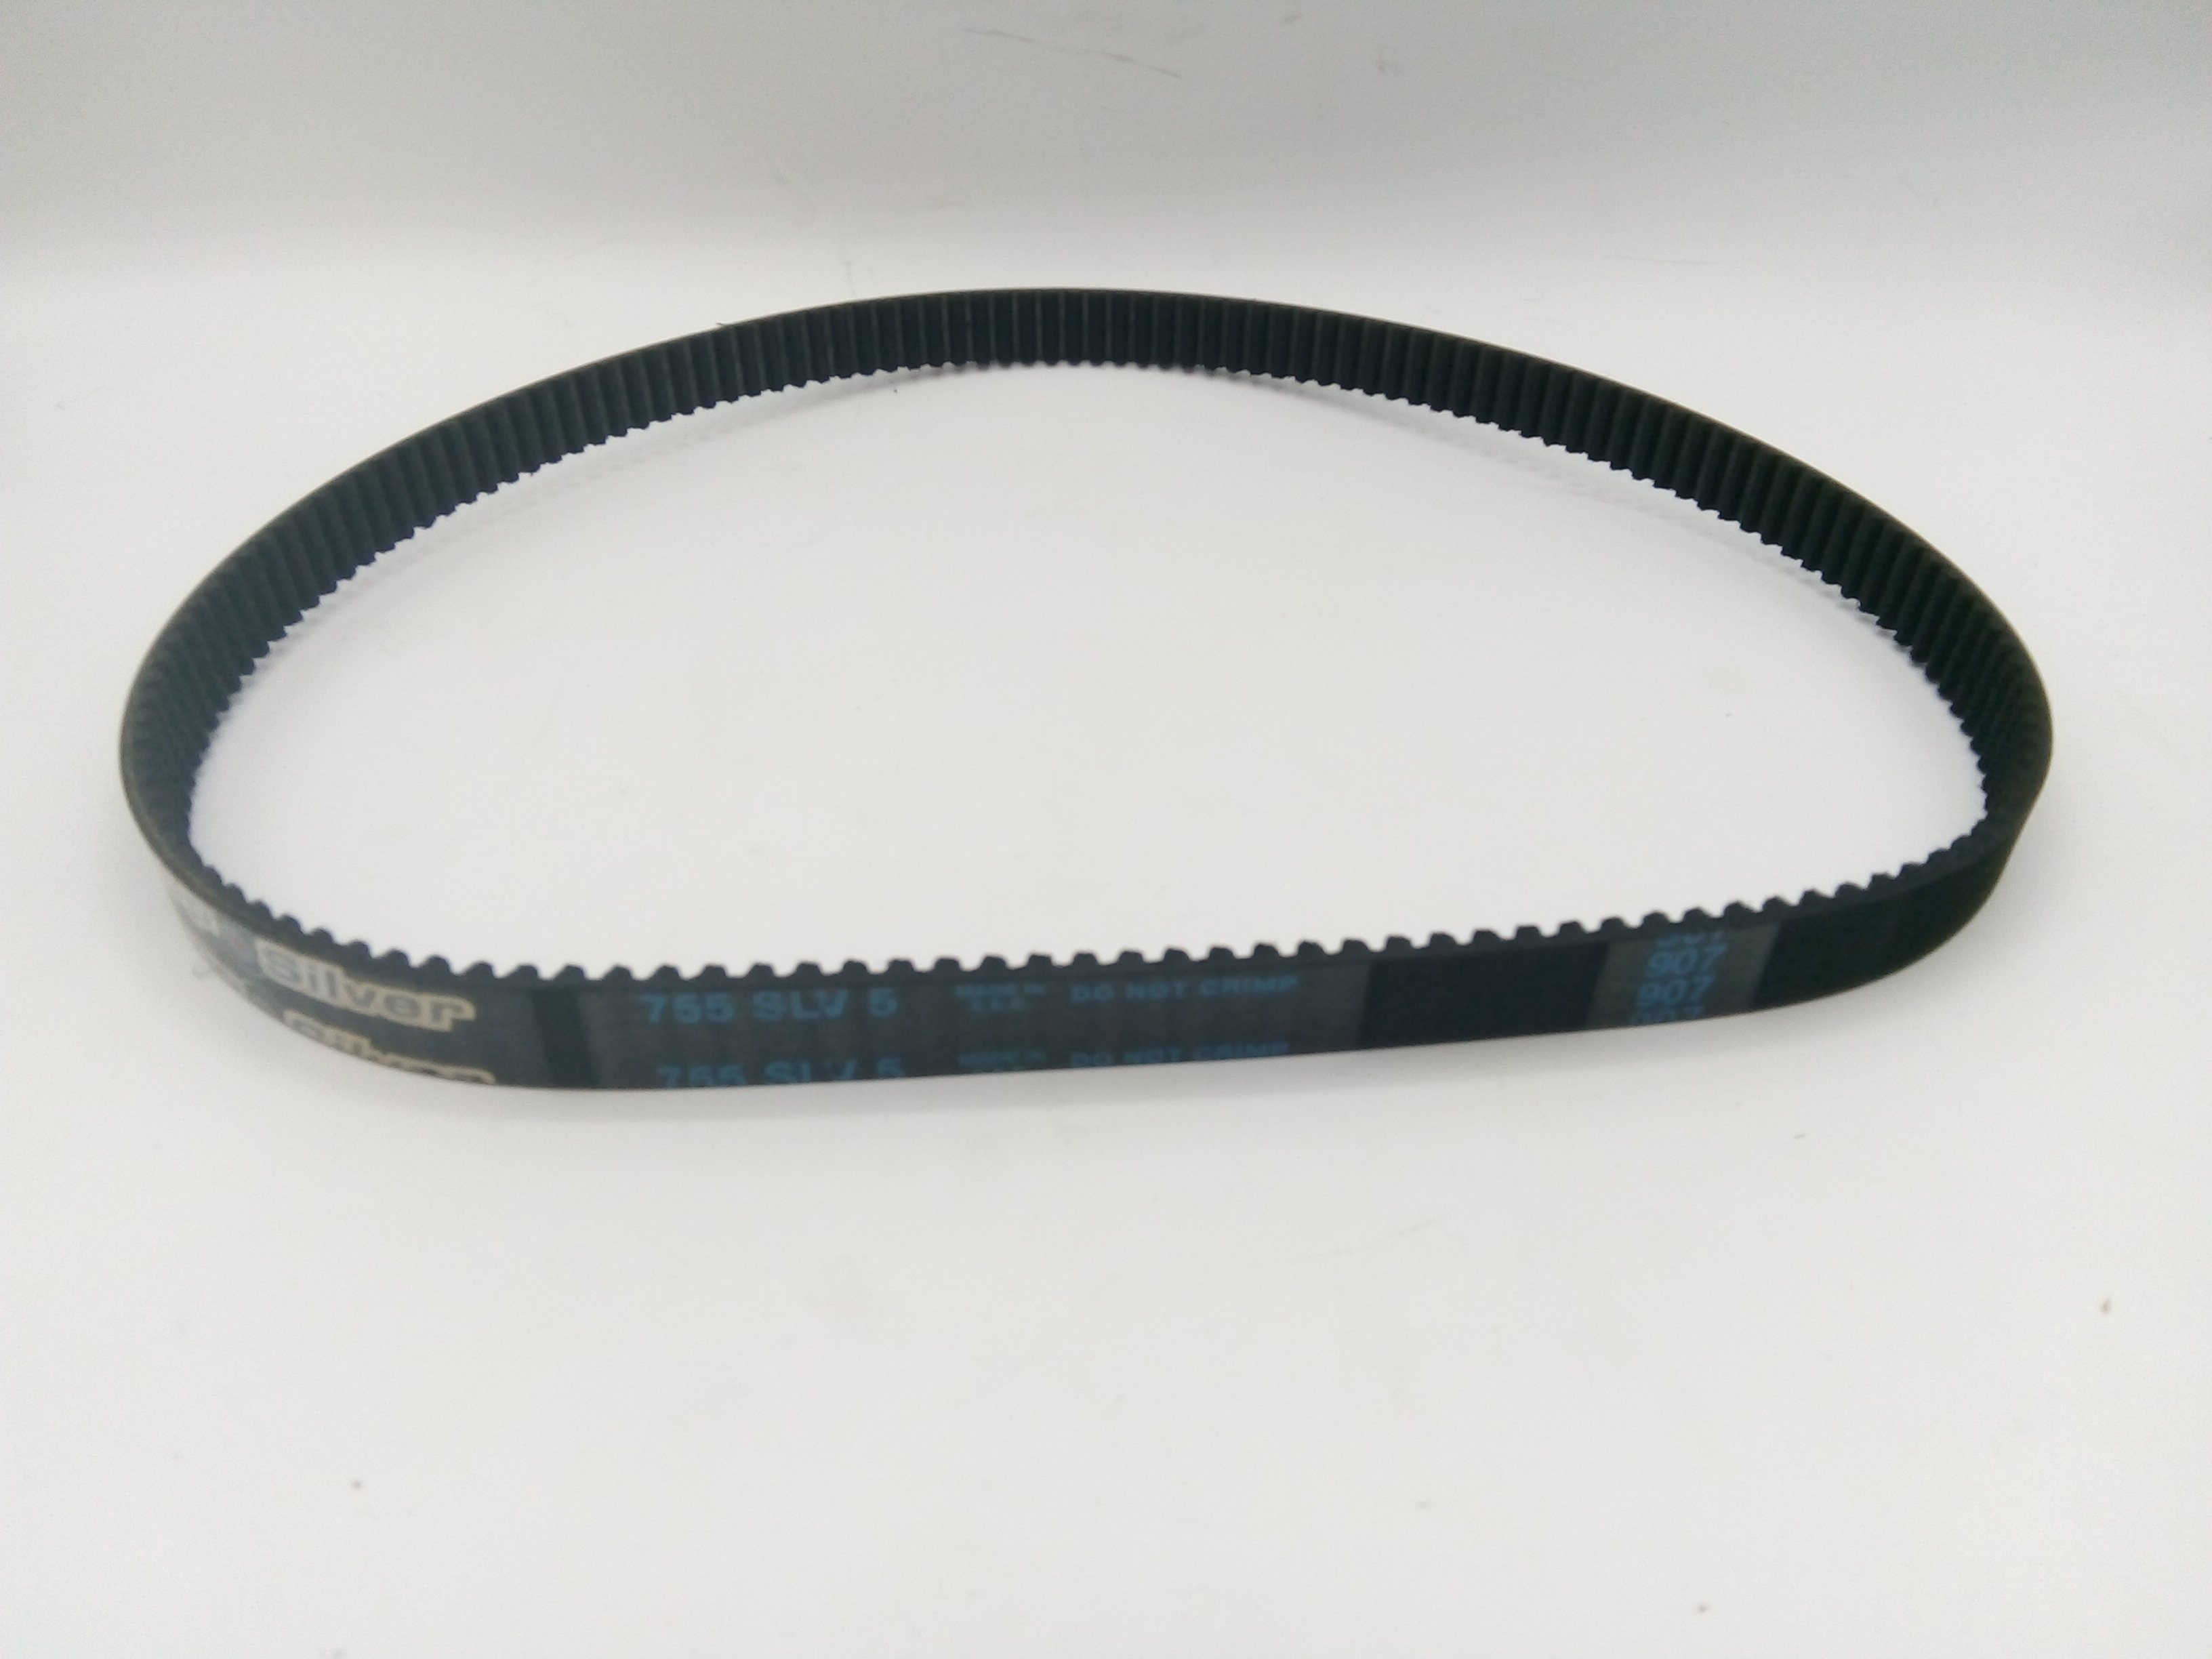 Timing Belt 755 SLV5 15 Z Axis RMX 2500